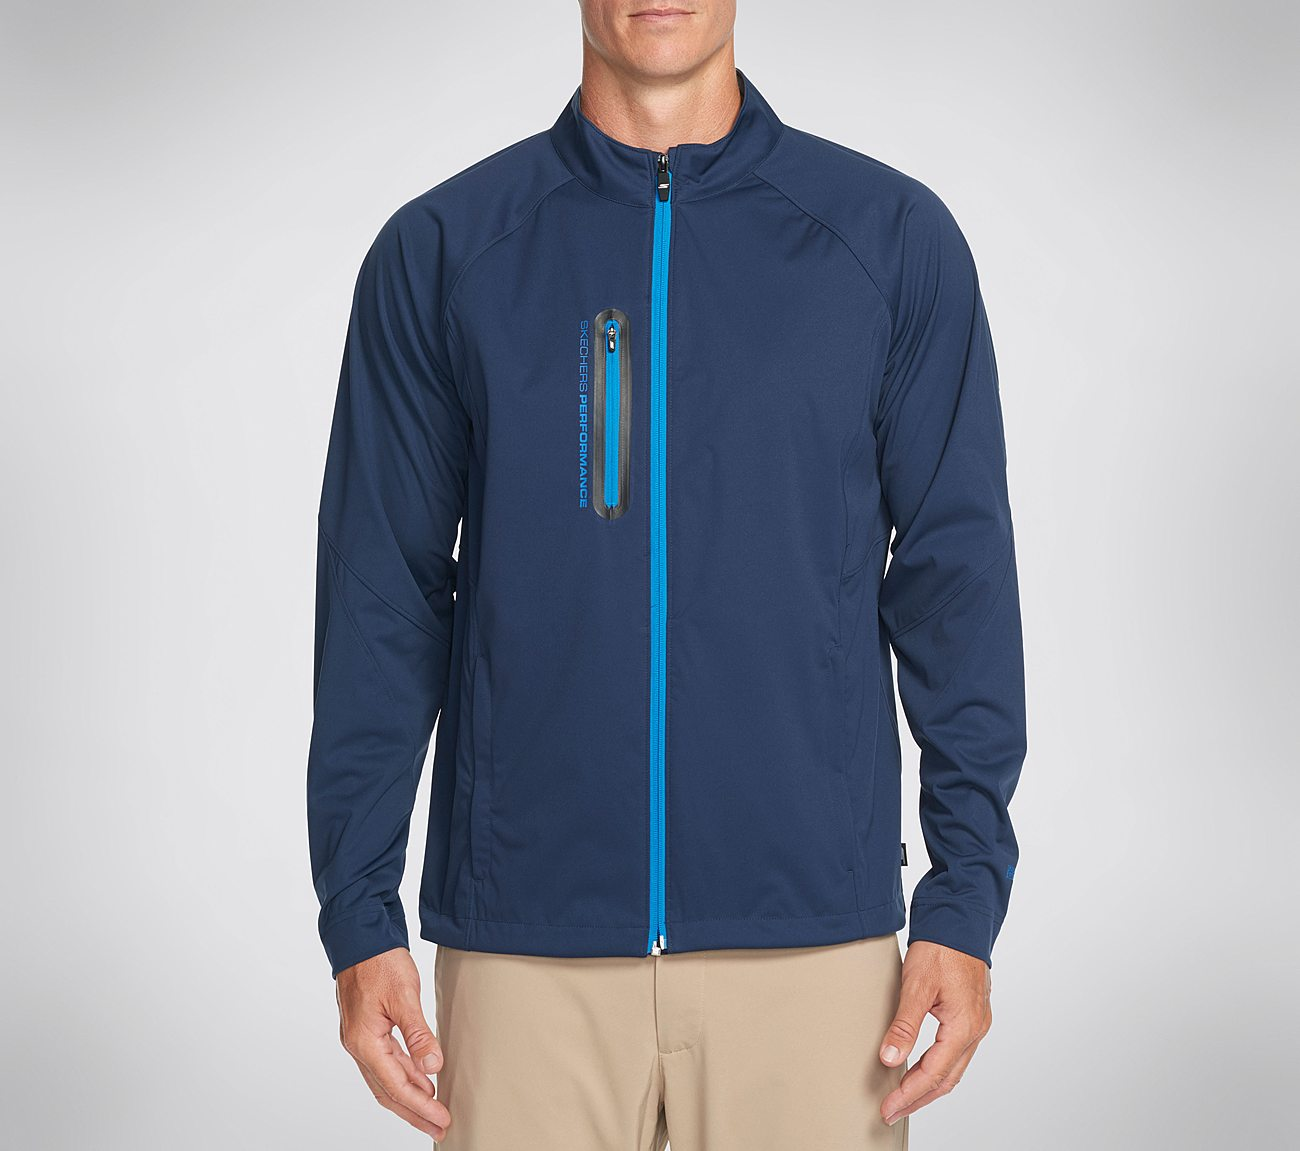 Skechers GOSHIELD DX11J Jacket